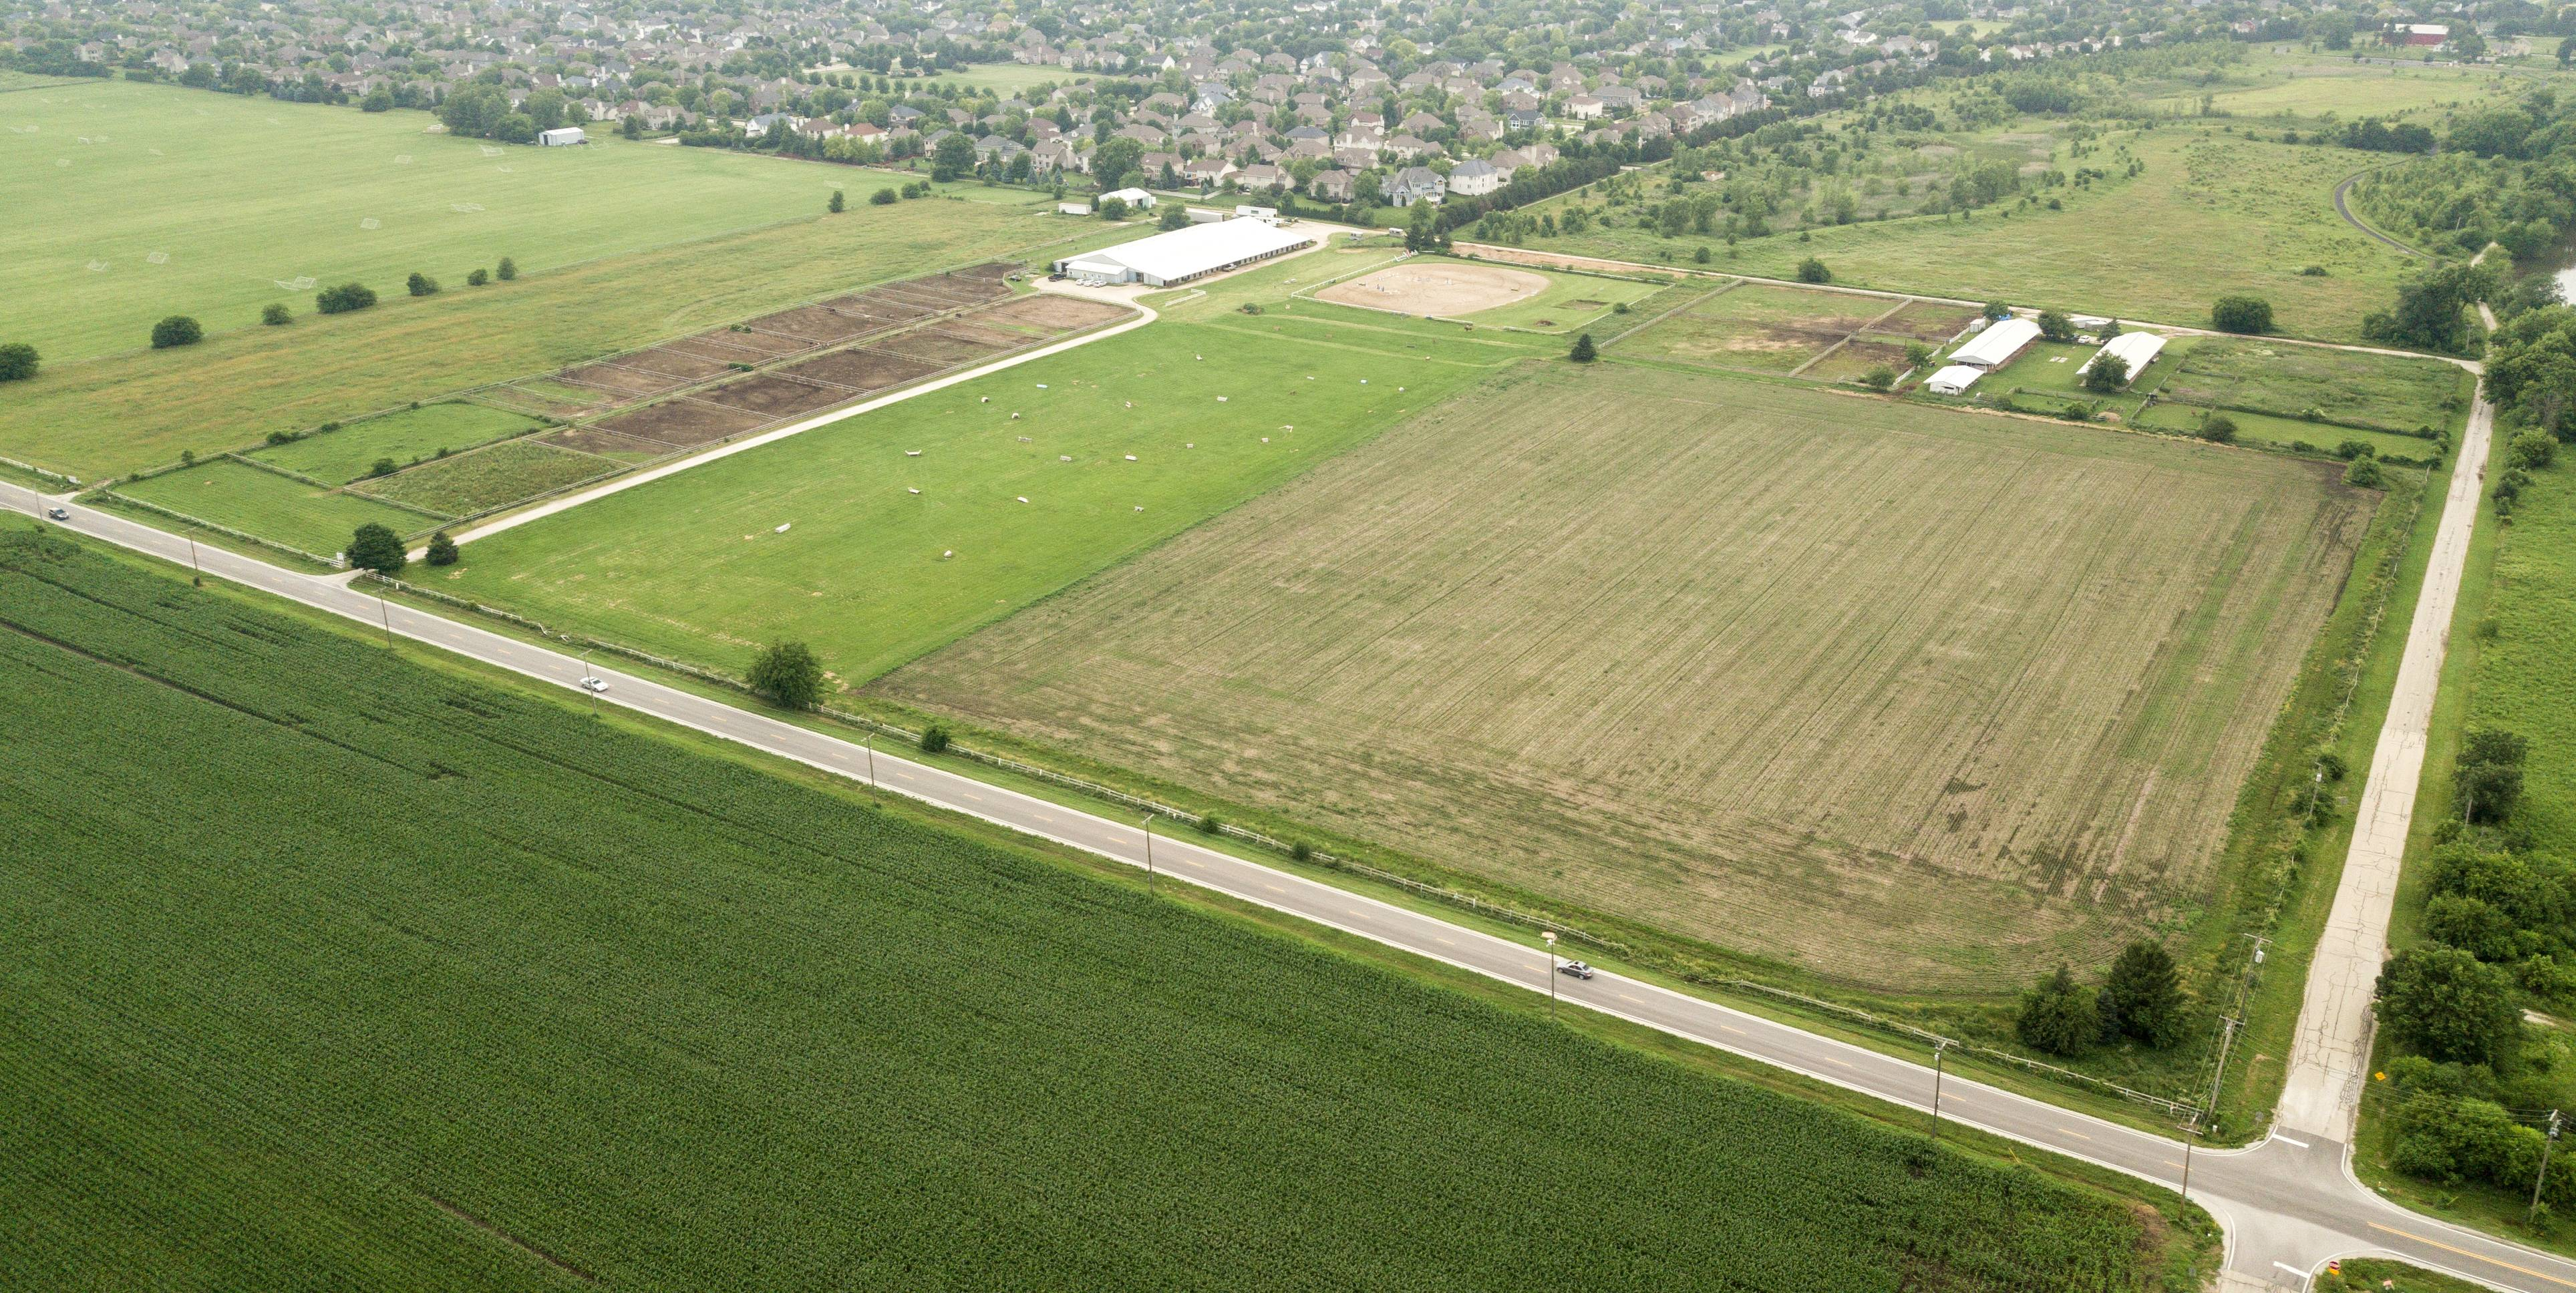 A 110-acre parcel in unincorporated Will County containing a horse farm and soccer fields is the site of a proposed subdivision that raised concerns from 25 nearby residents during a planning and zoning commission meeting Wednesday in Naperville.